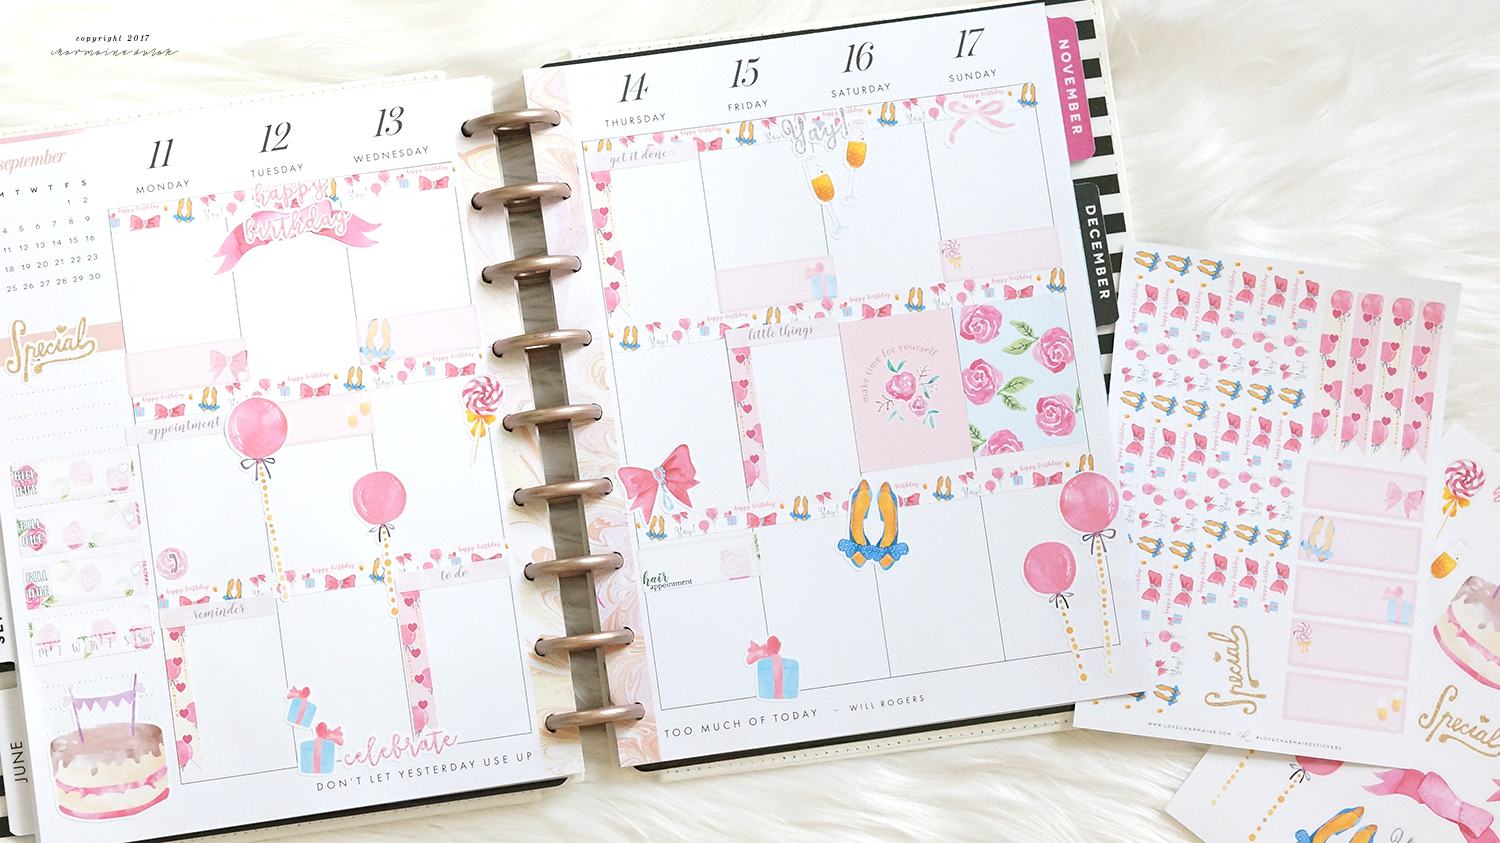 Plan With Me: Birthday Week & Sept Monthly